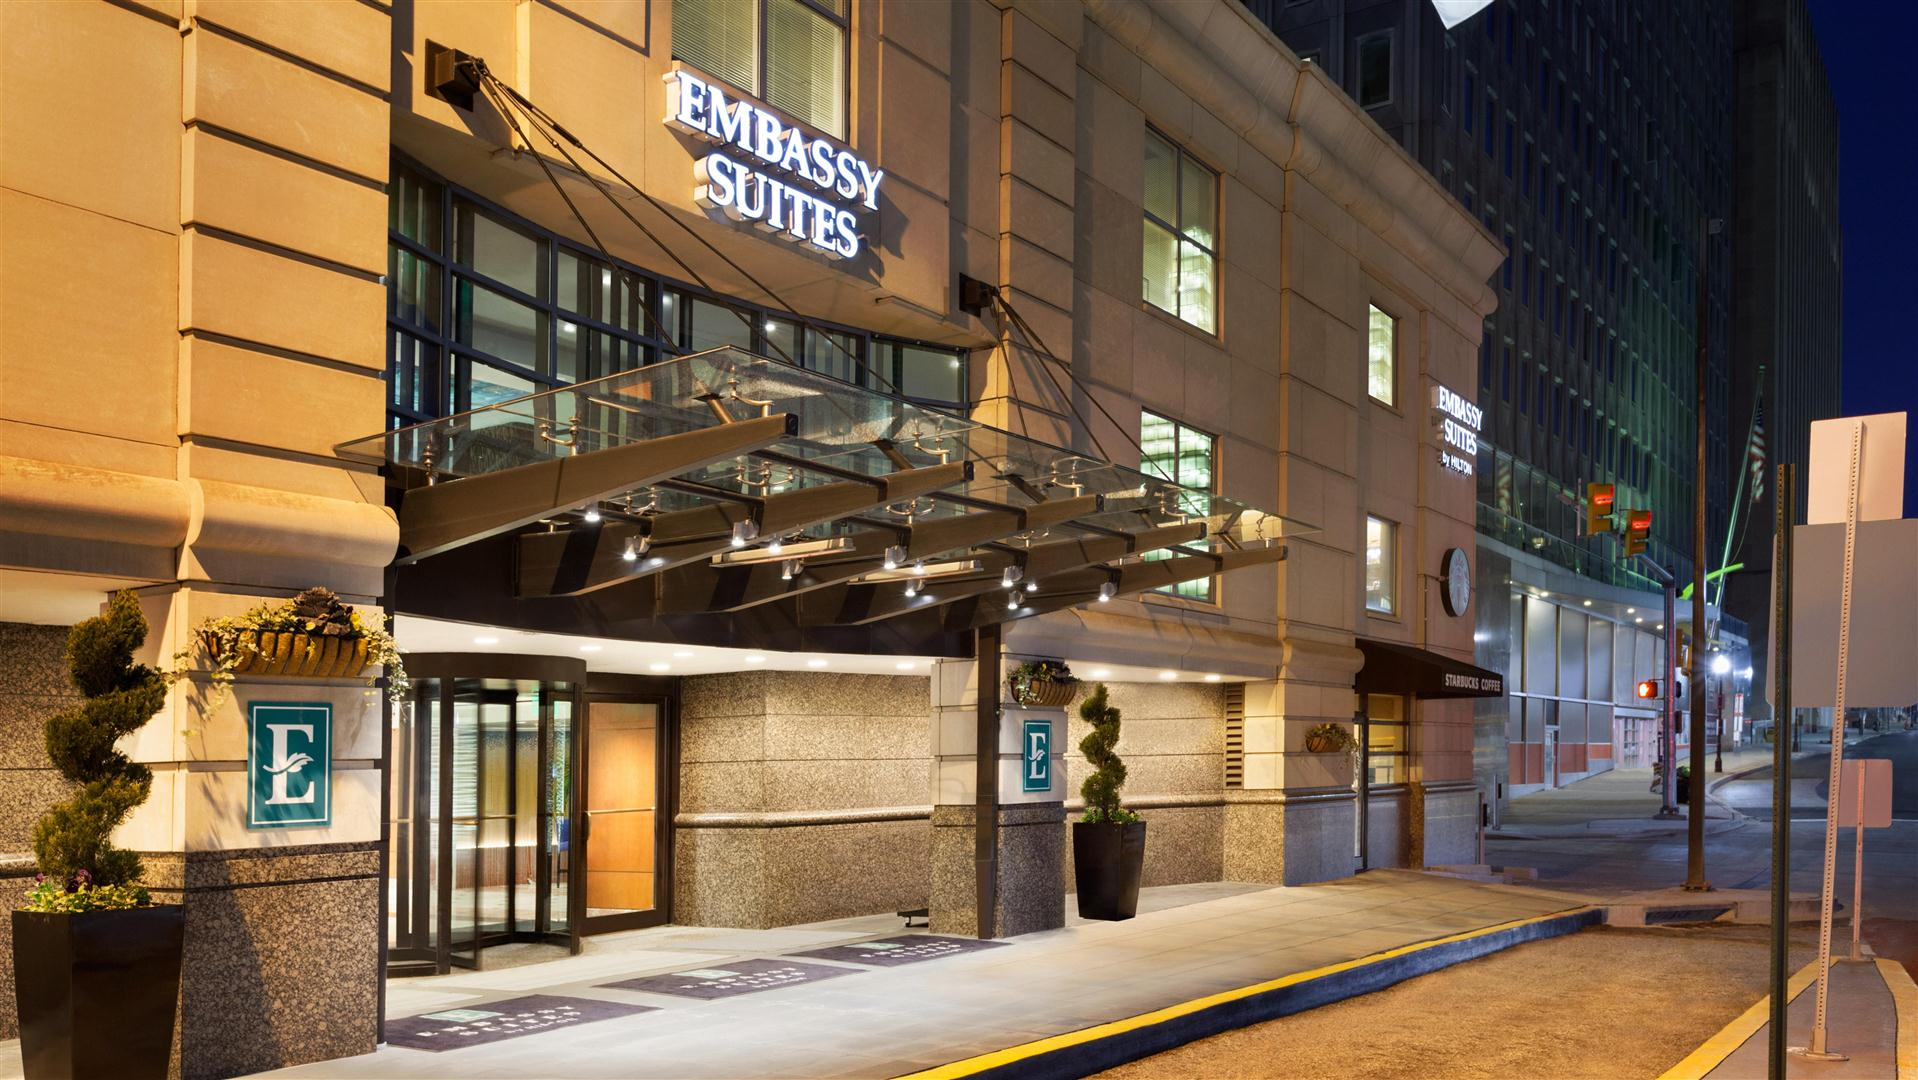 Meetings And Events At Embassy Suites By Hilton Baltimore Inner